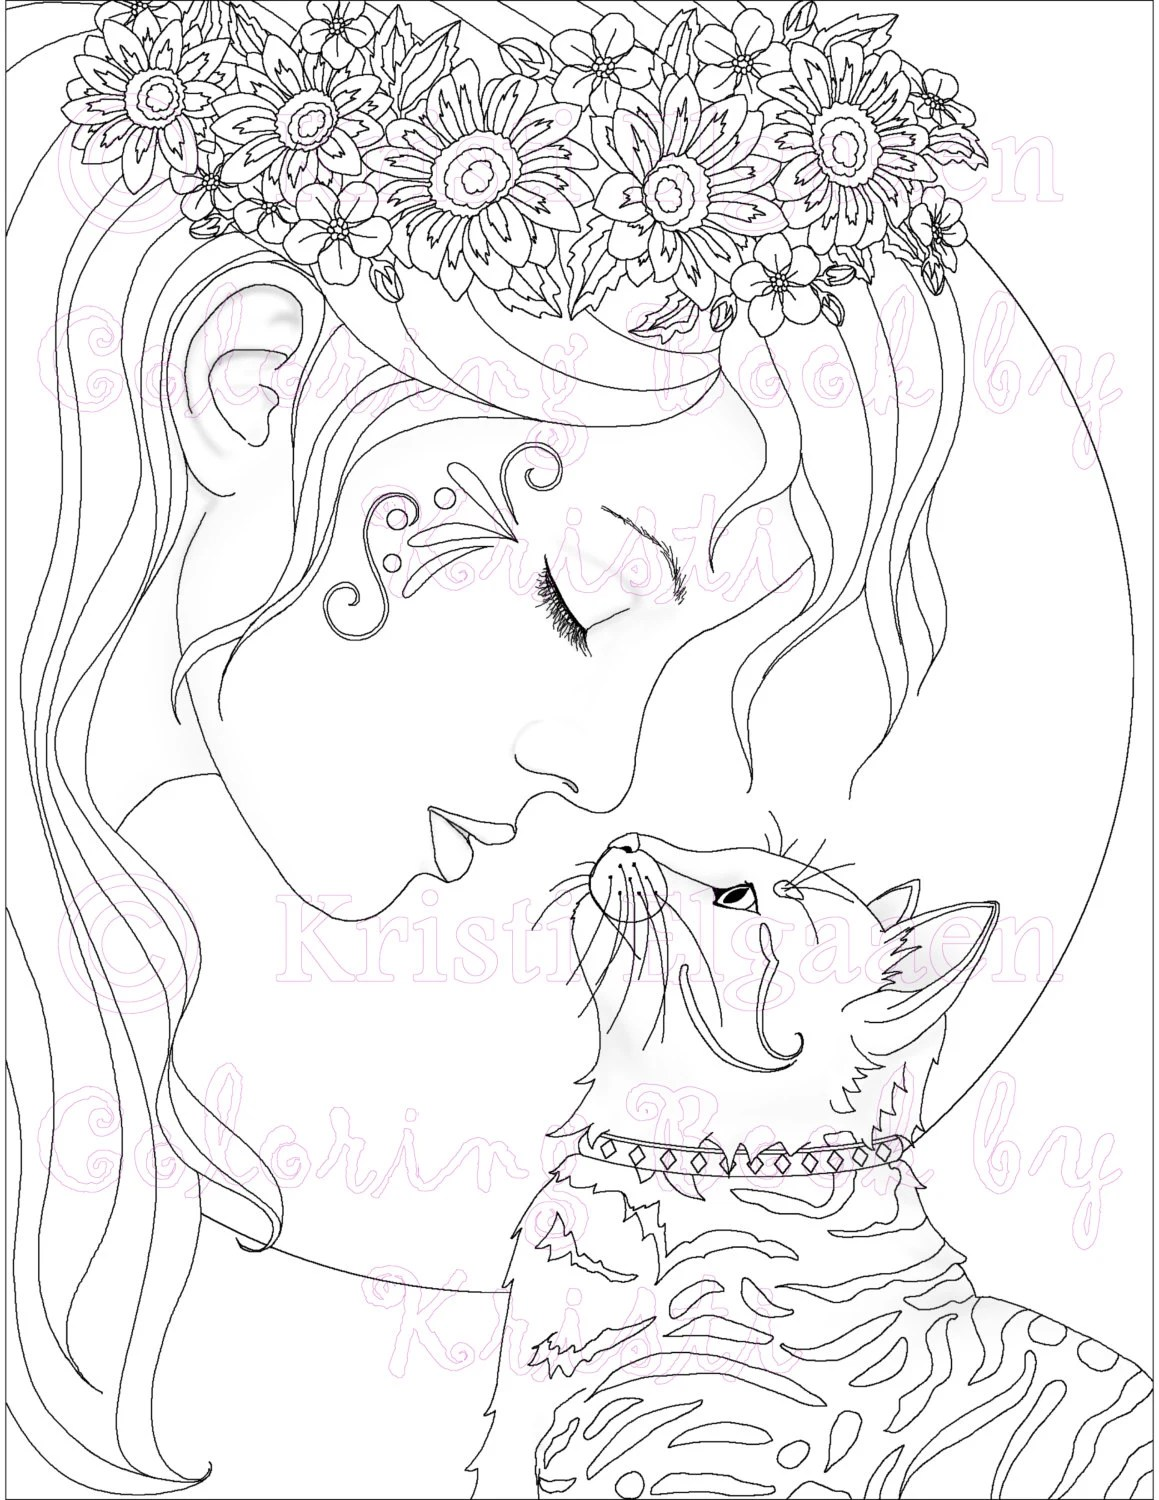 Adult Coloring Page Cat Coloring Page Fantasy Coloring The